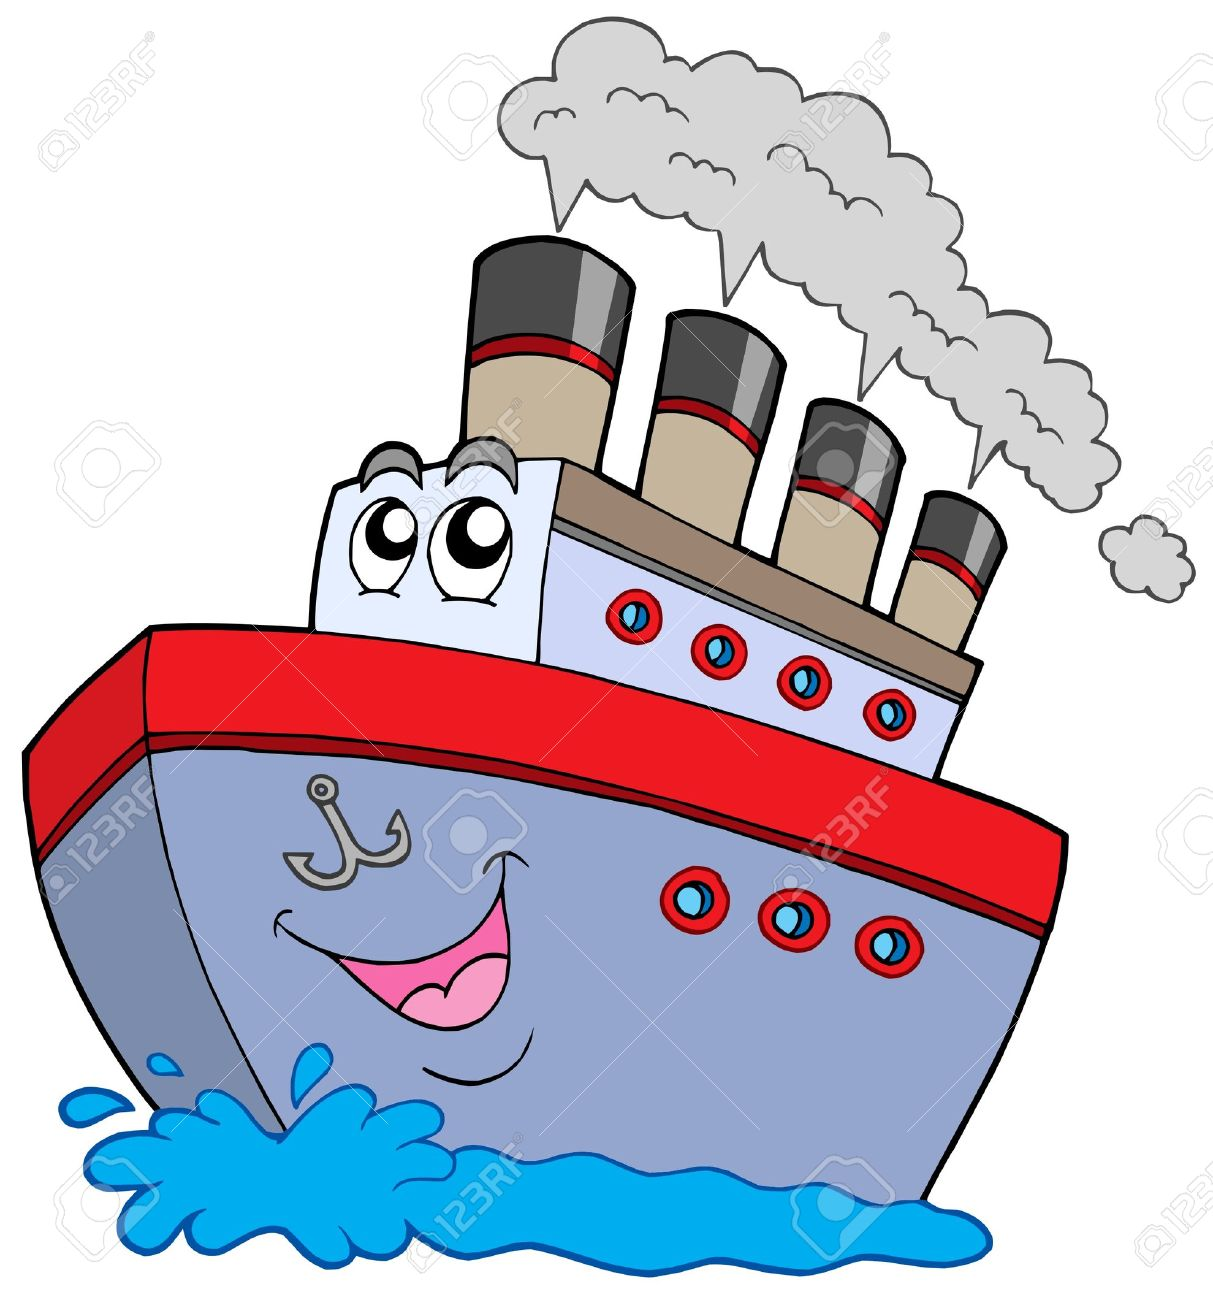 Cartoon boat on white background - vector illustration. Stock Vector - 4574130